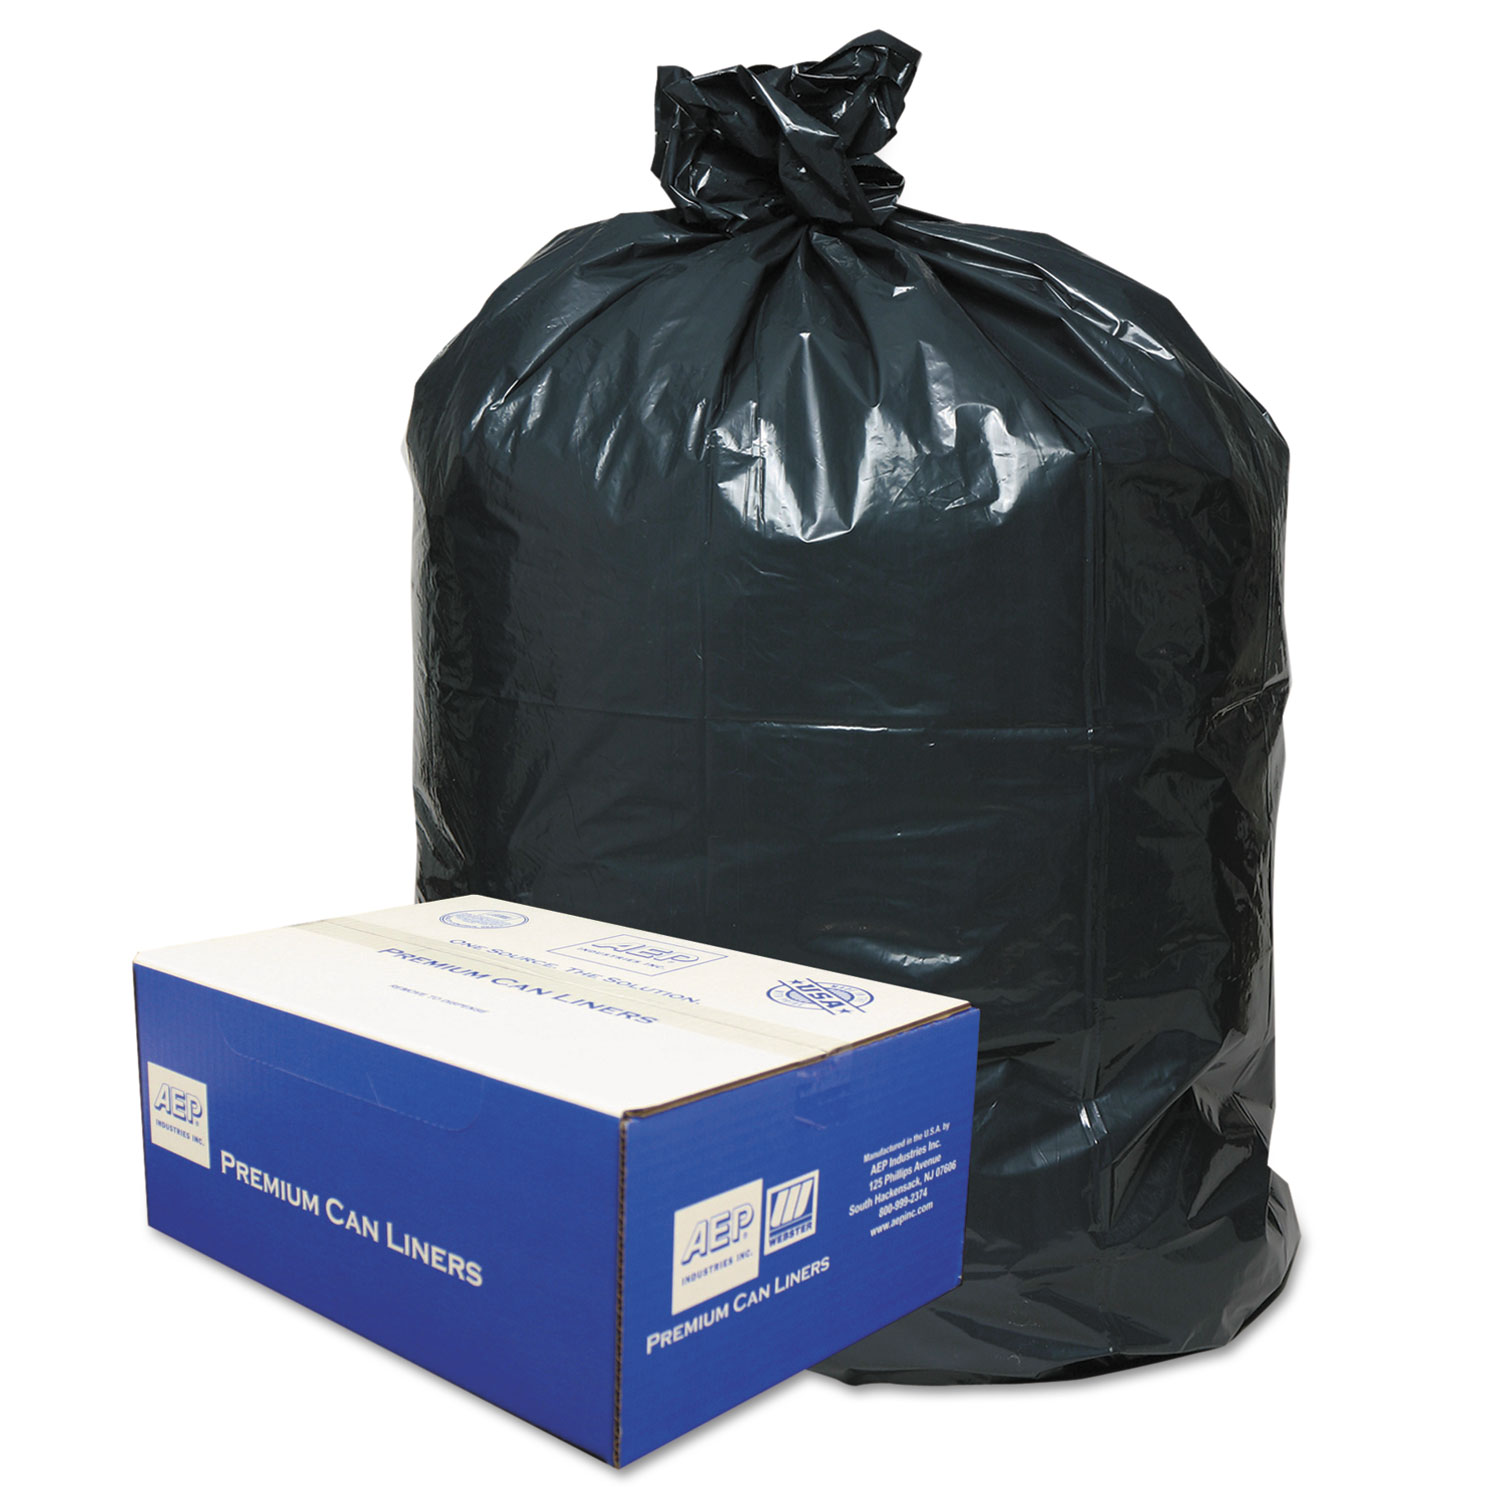 """Linear Low-Density Can Liners, 45 gal, 0.63 mil, 40"""" x 46"""", Black, 250/Carton"""